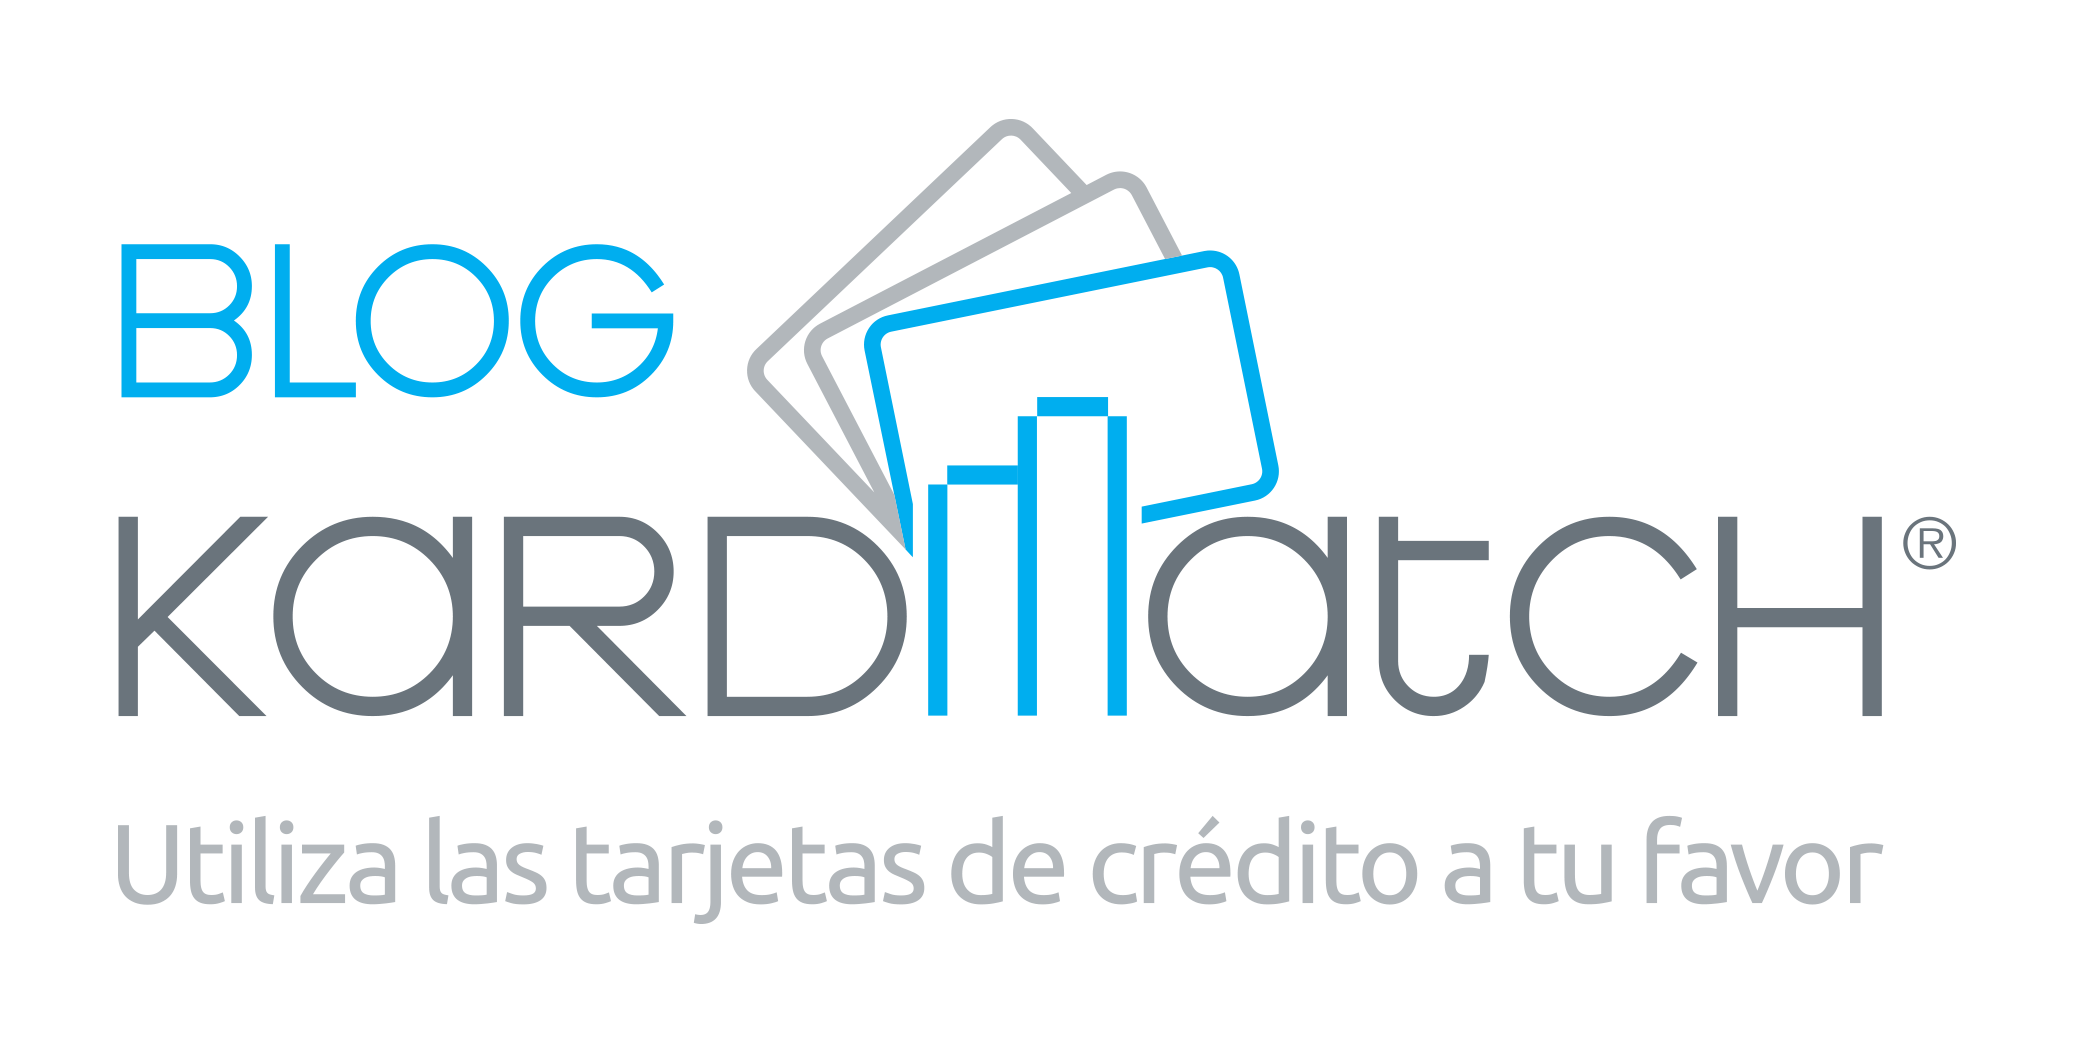 logo-blog-kardmatch.png